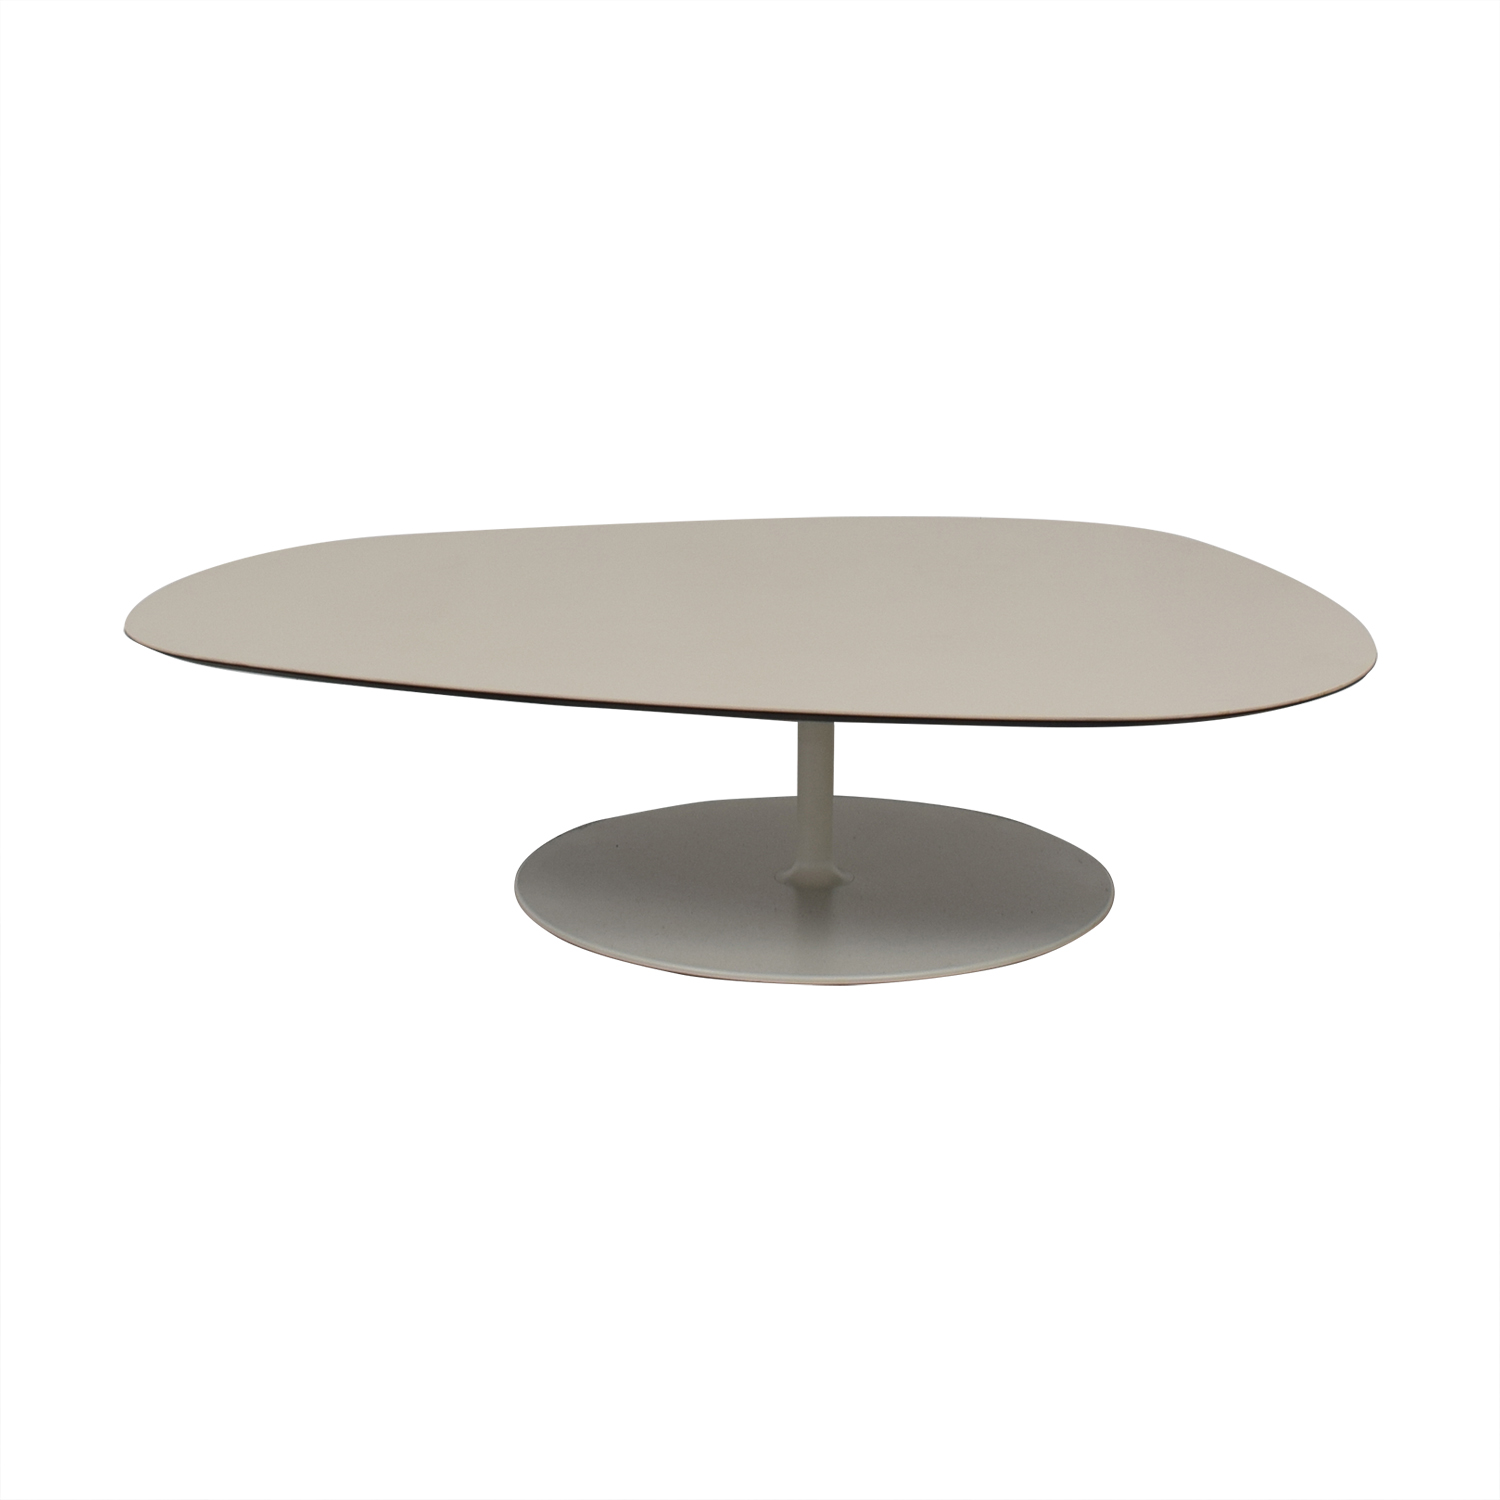 Moroso Phoenix White Rounded Triangular Table / Coffee Tables